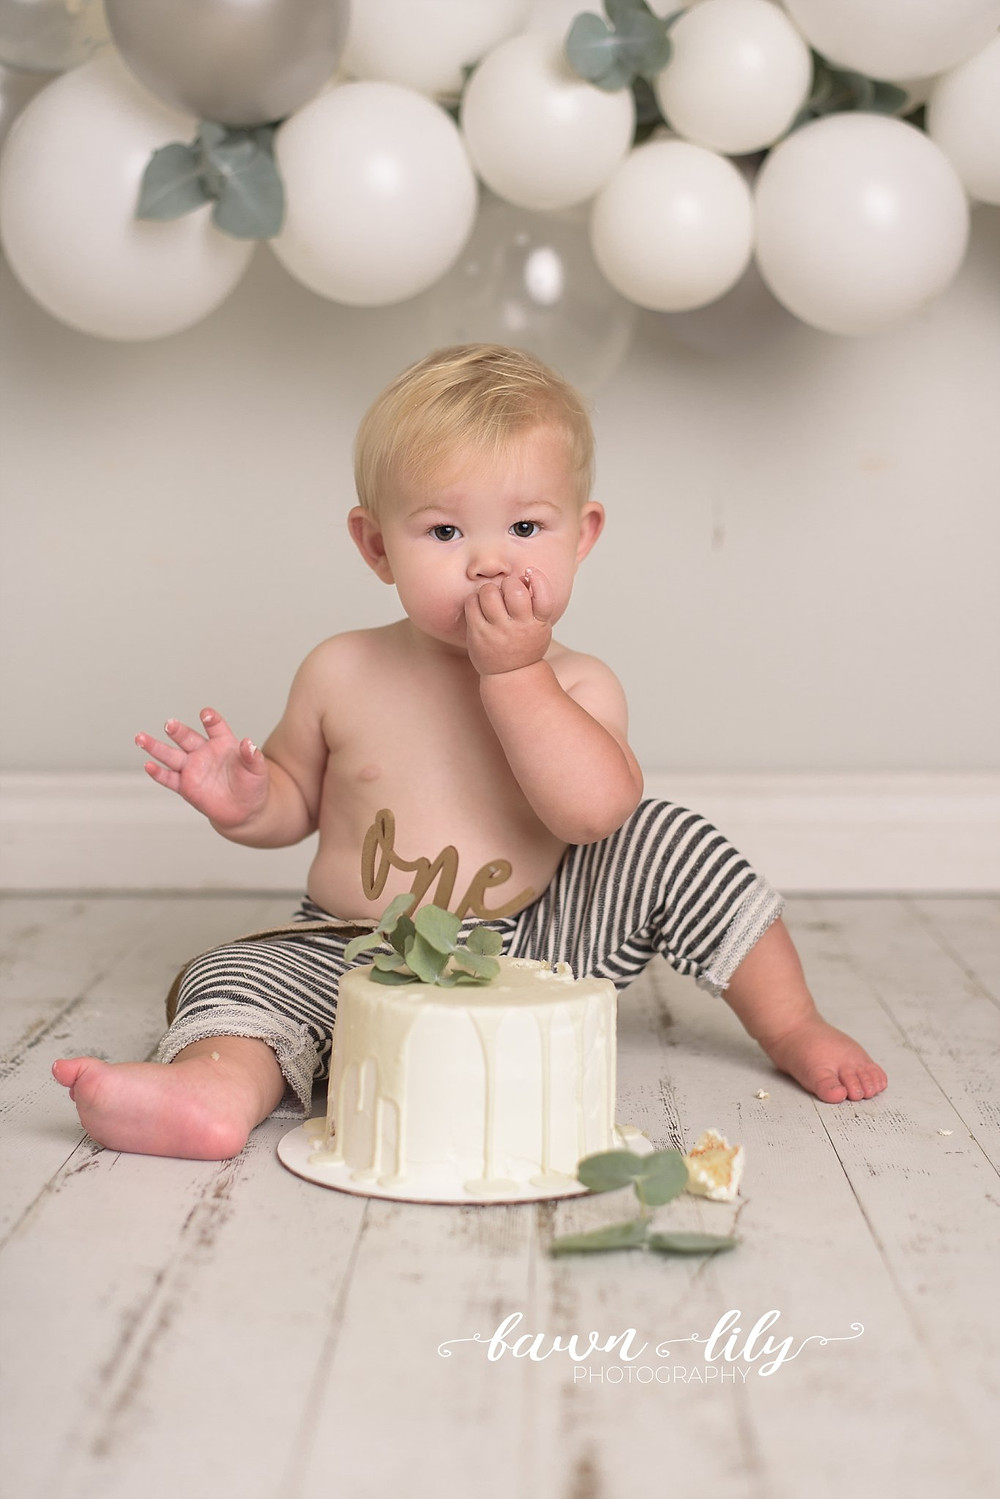 Cute Baby Boy Cake Smash, Fawn Lily Photography